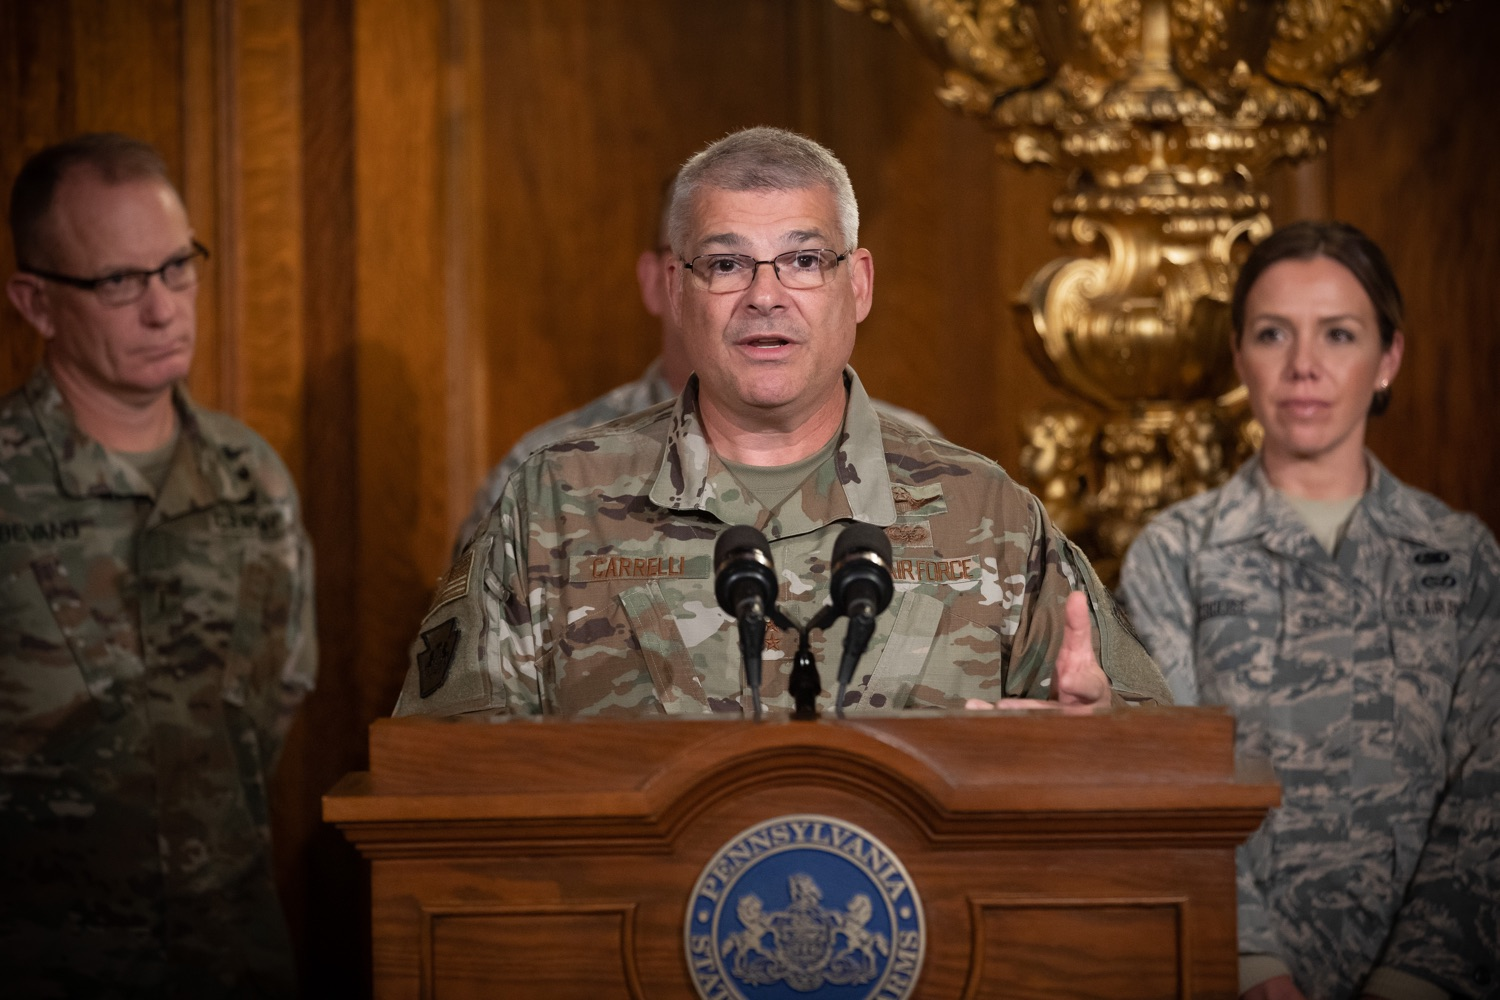 """<a href=""""http://filesource.abacast.com/commonwealthofpa/photo/17563_gov_giBill_dz_009.jpg"""" target=""""_blank"""">⇣Download Photo<br></a>Maj. Gen. Anthony Carelli speaking at the announcement.Governor Tom Wolf, joined by Pennsylvanias adjutant general and head of the Department of Military and Veterans Affairs Maj. Gen. Anthony Carelli, legislators and PA National Guard members and their families, encouraged PA National Guard members to take advantage of the new Military Family Education Program, or PA GI bill, now open for enrollment. Harrisburg, PA Monday, November 4 2019"""